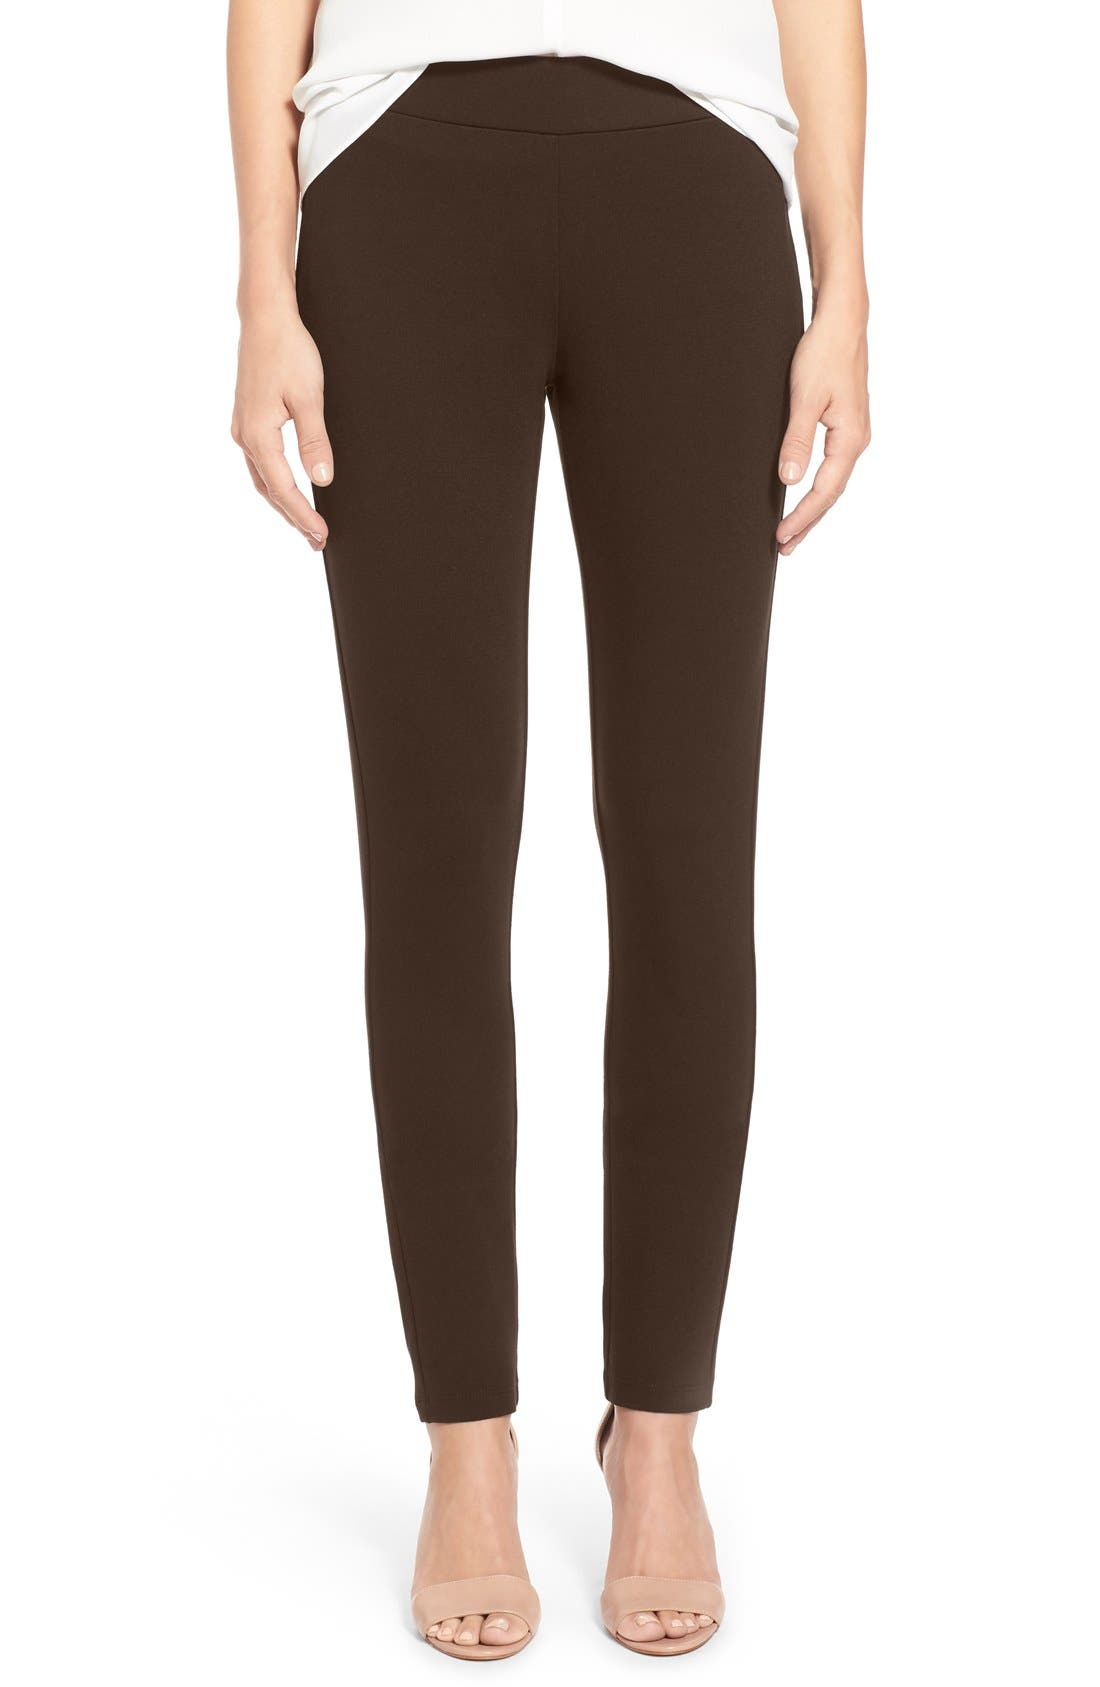 Main Image - NYDJ Stretch 'Jodie' Ponte Leggings (Regular & Petite)